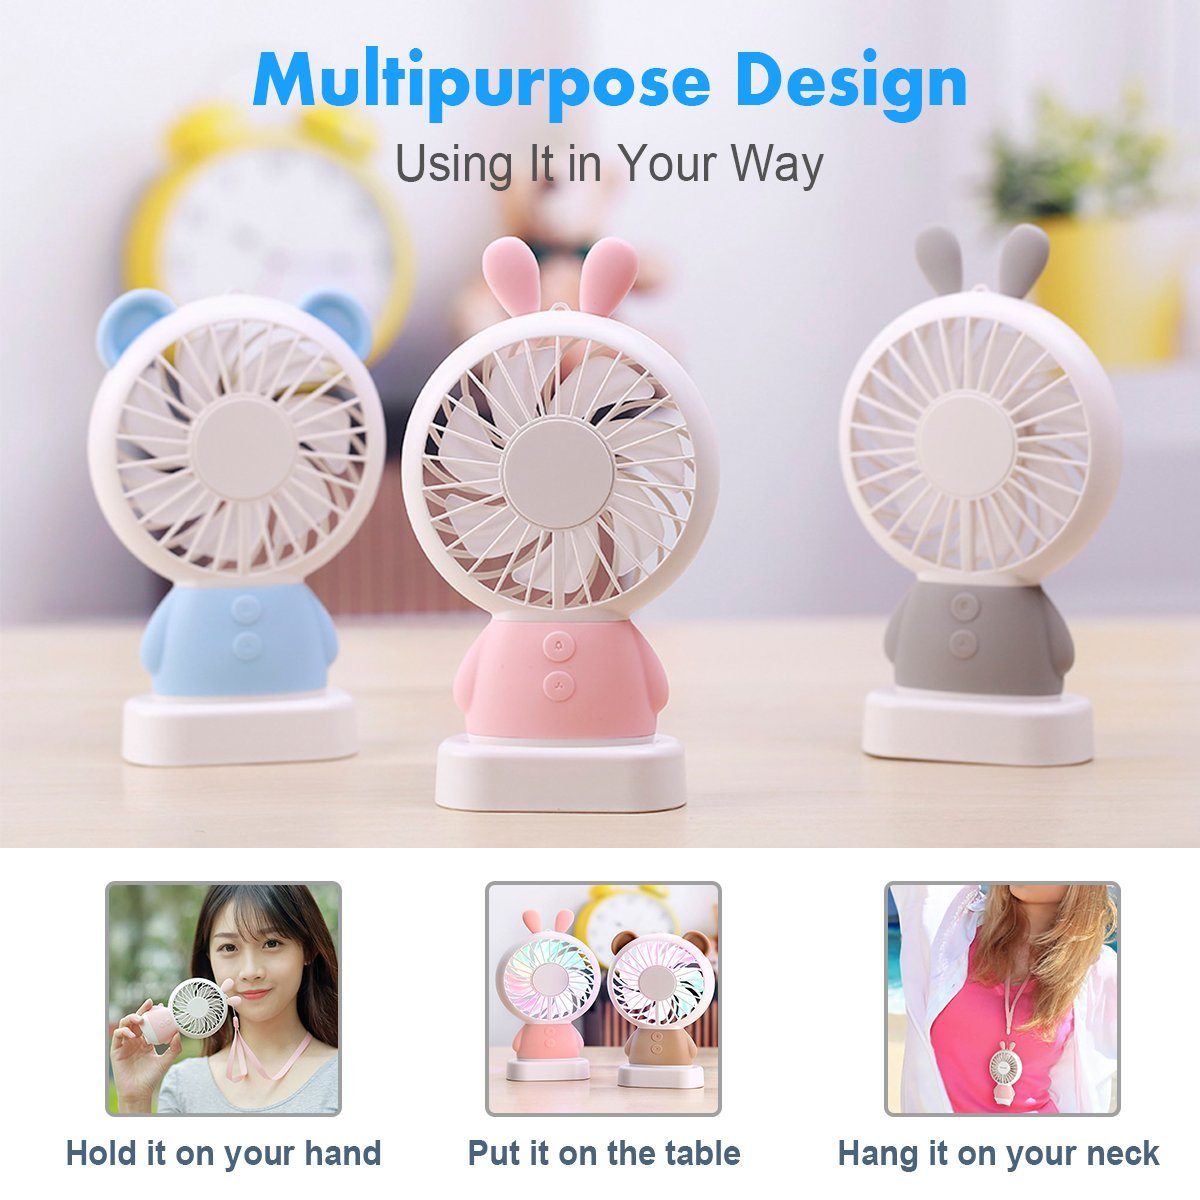 BONTIME Portable Fan - Mini Hand held Fan, Rechargeable USB Fan with Colorful Night Light, 2 Speeds, Cooling for Traveling, Fishing, Camping by BONTIME (Image #7)